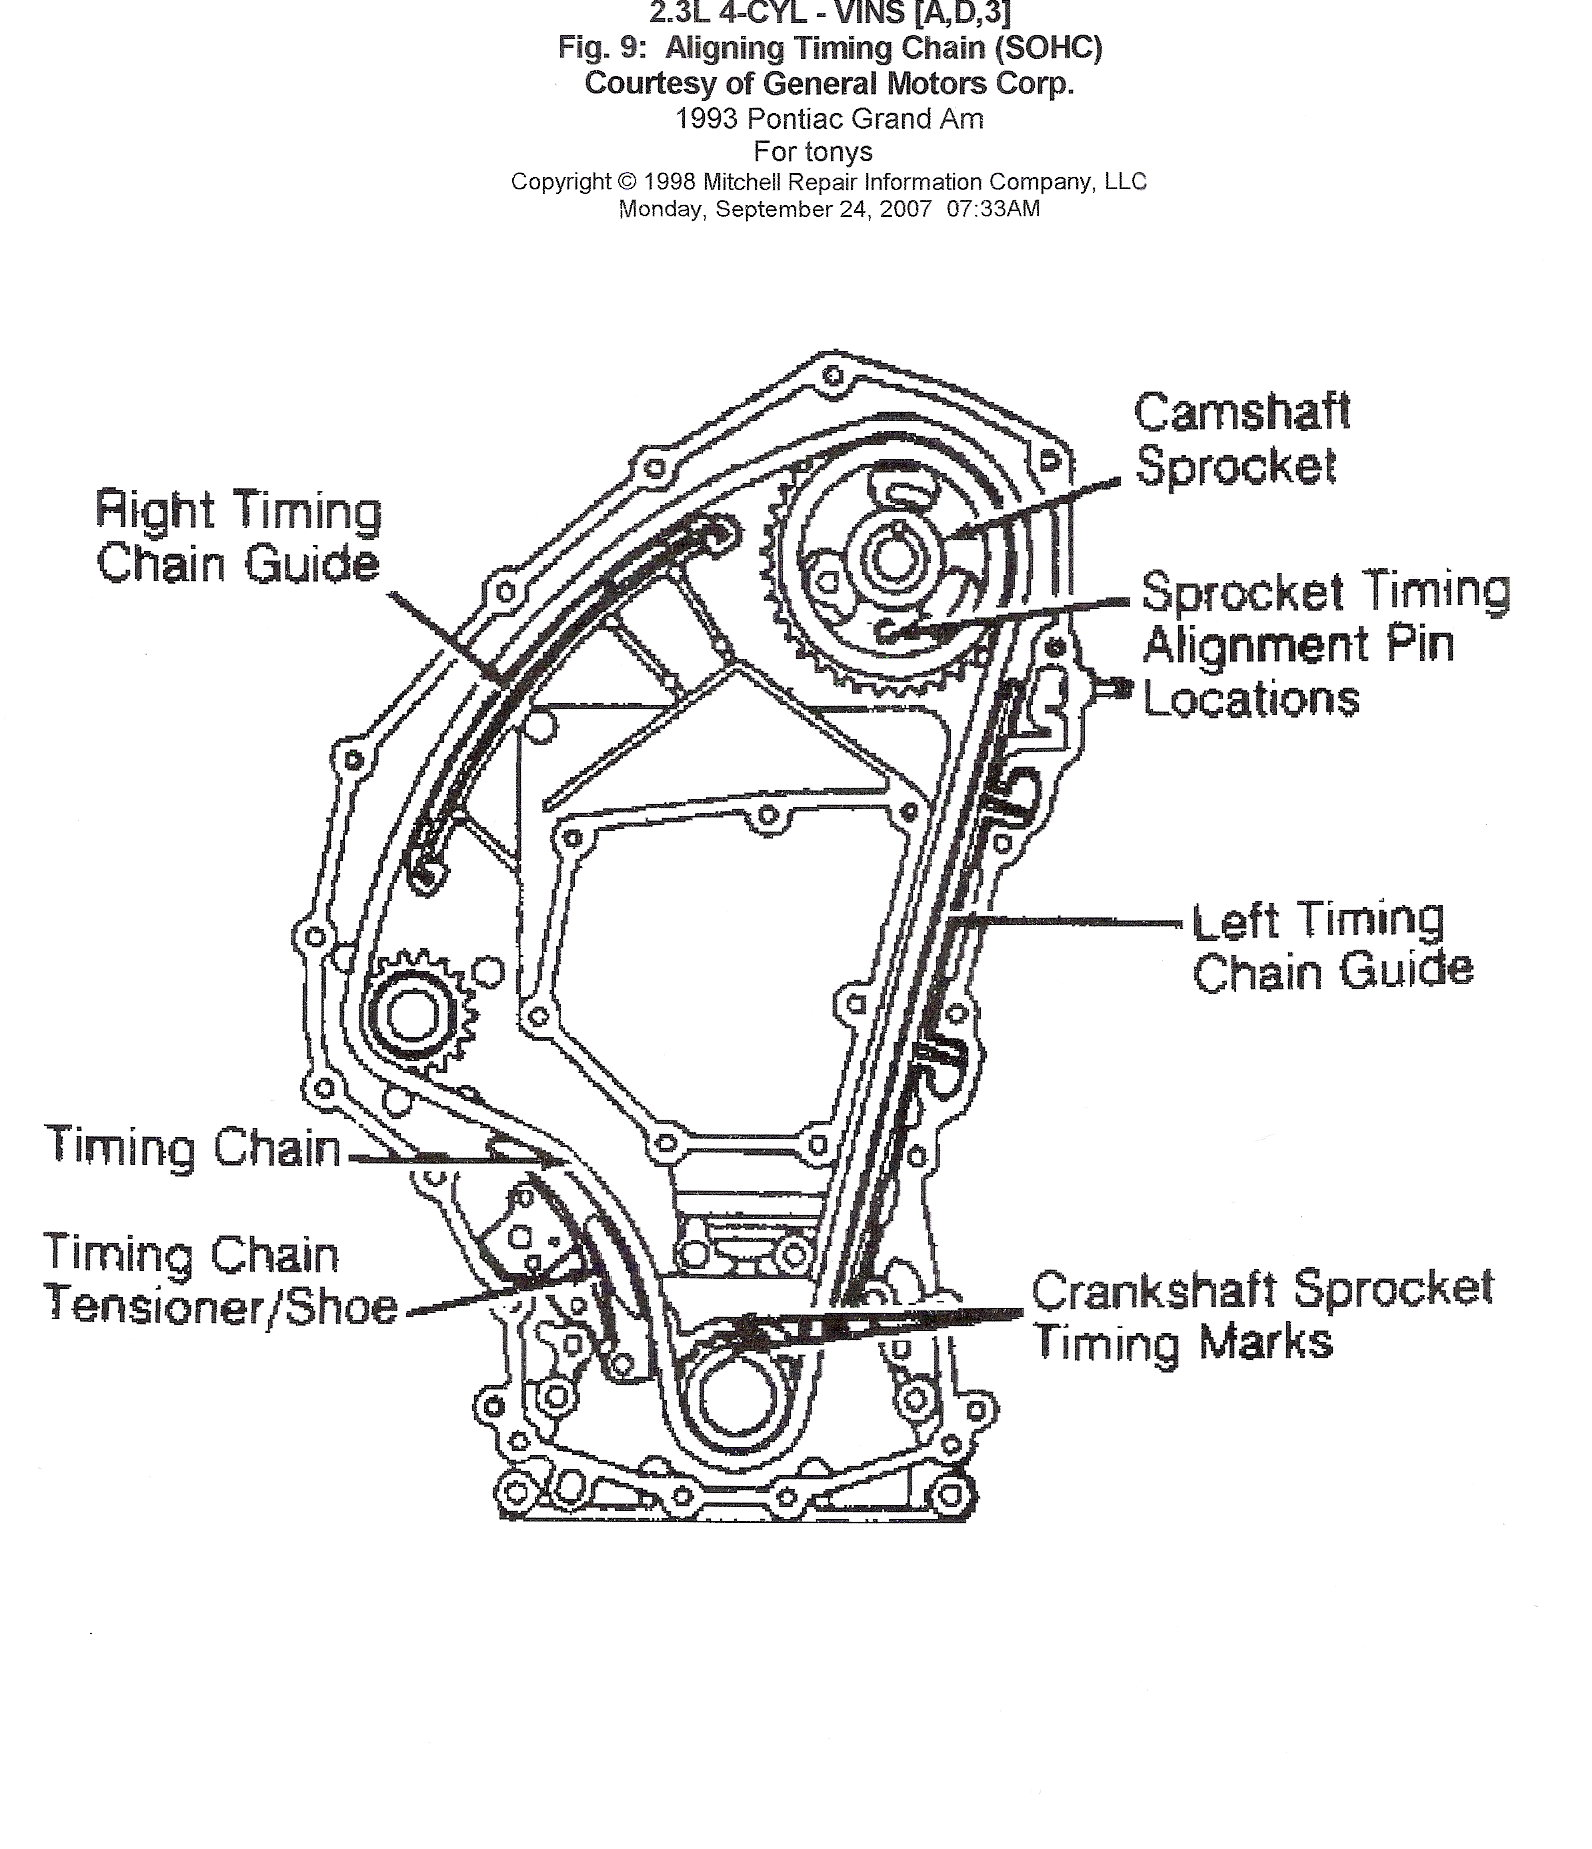 what are the correct positions for the camshaft and